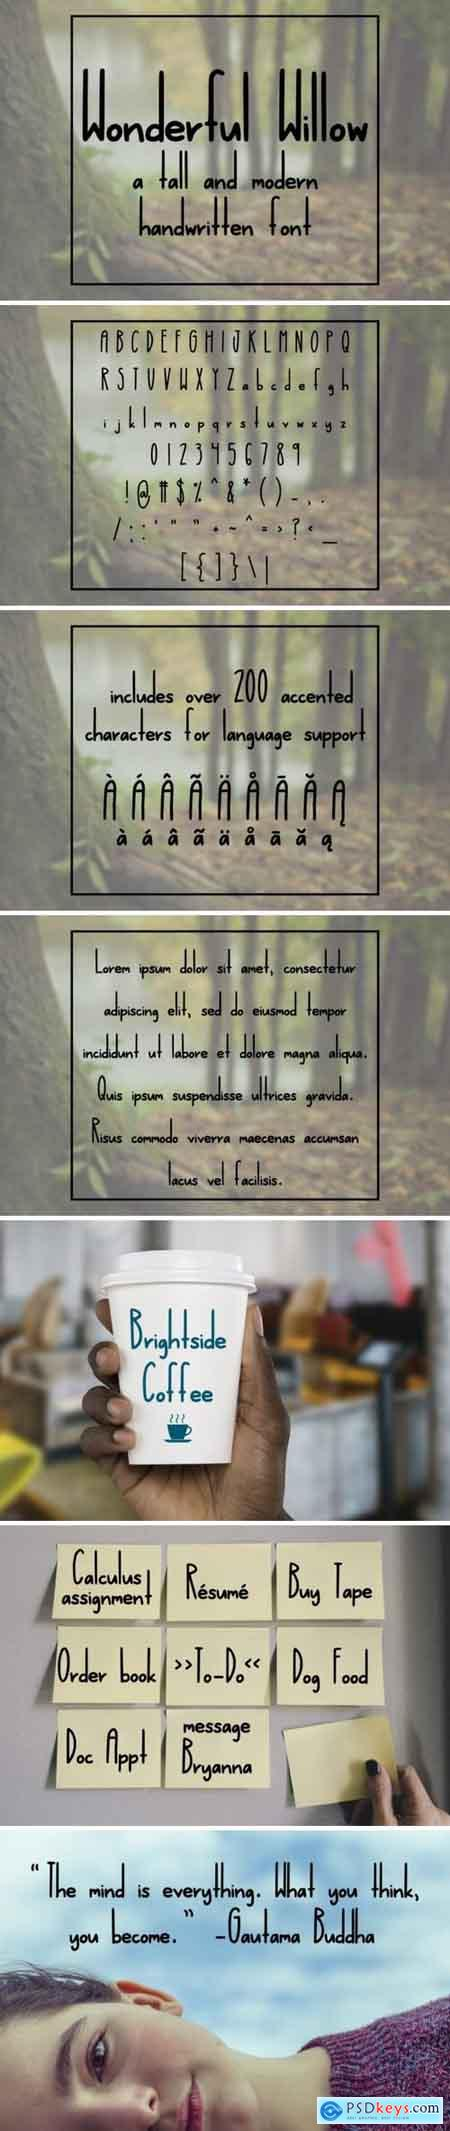 Wonderful Willow Font